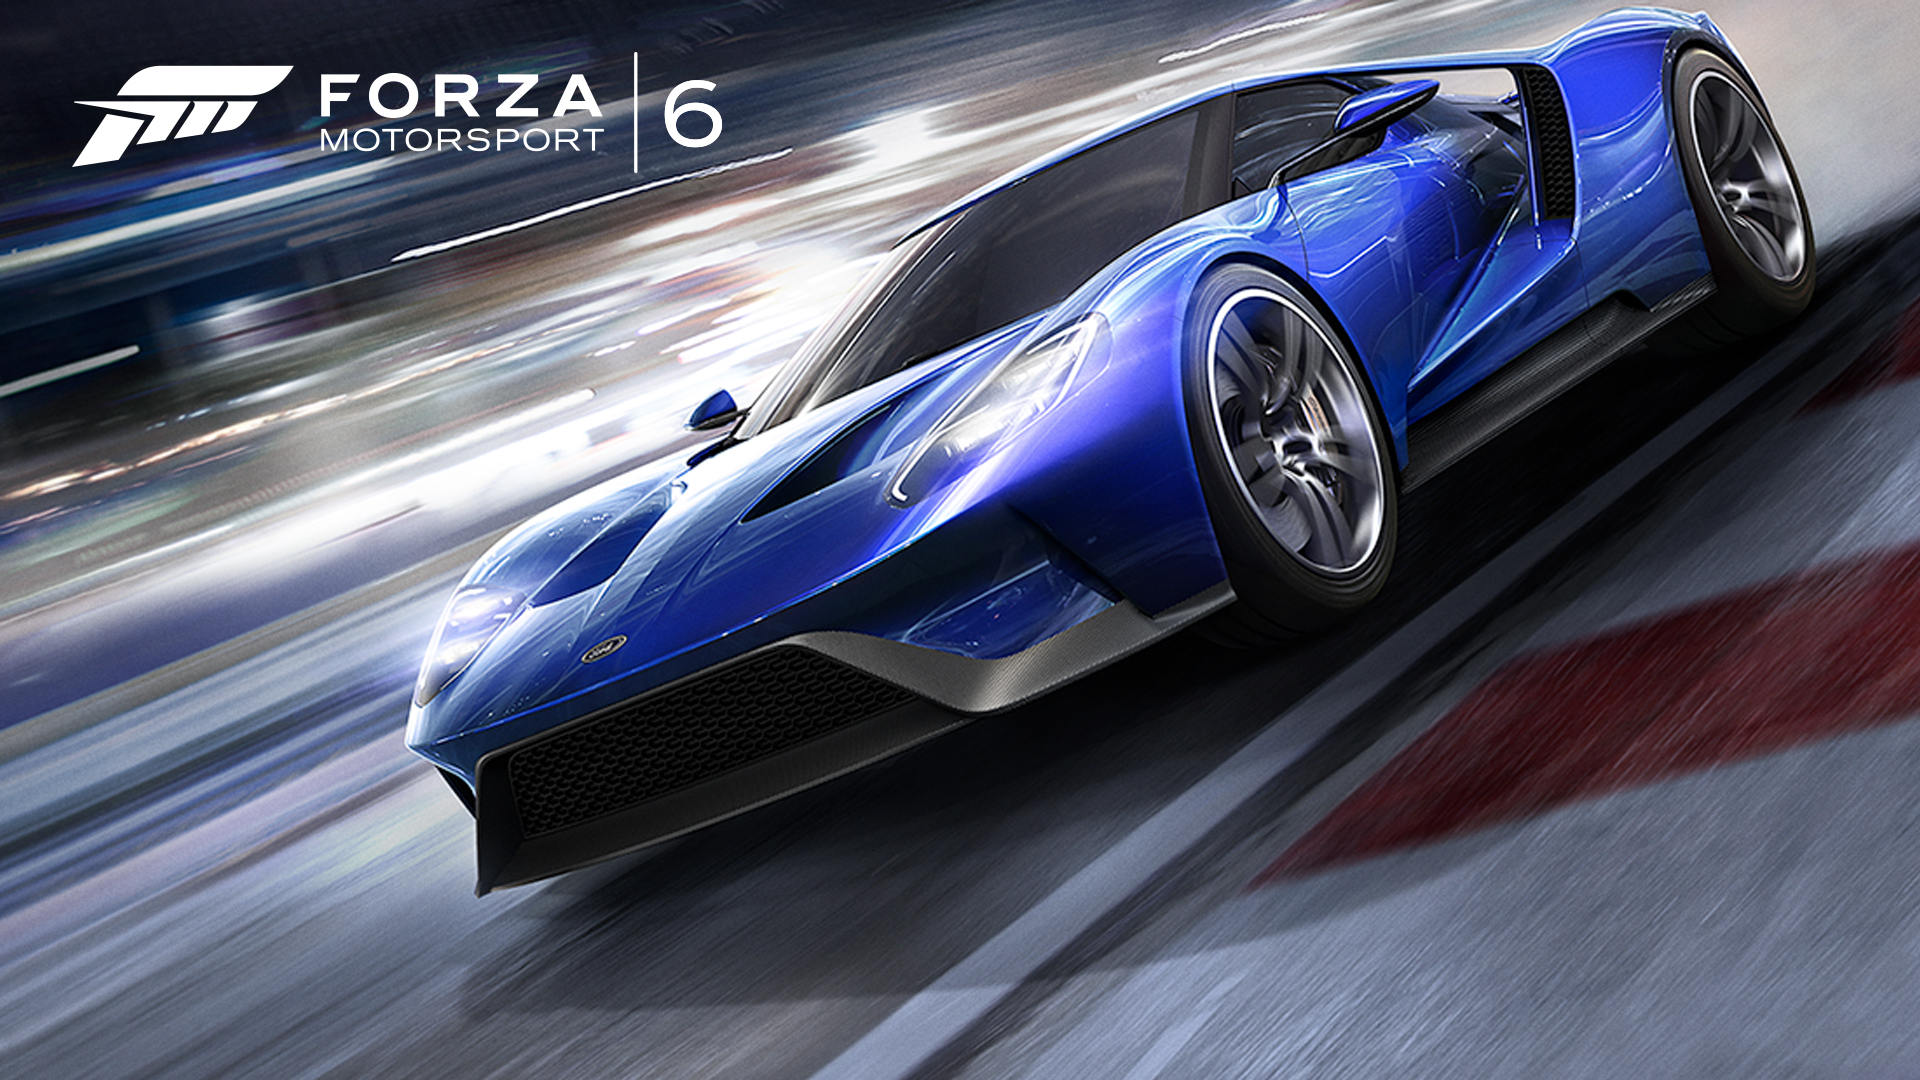 Forza motorsport 6 mega guide: money cheats, credits, affinity.